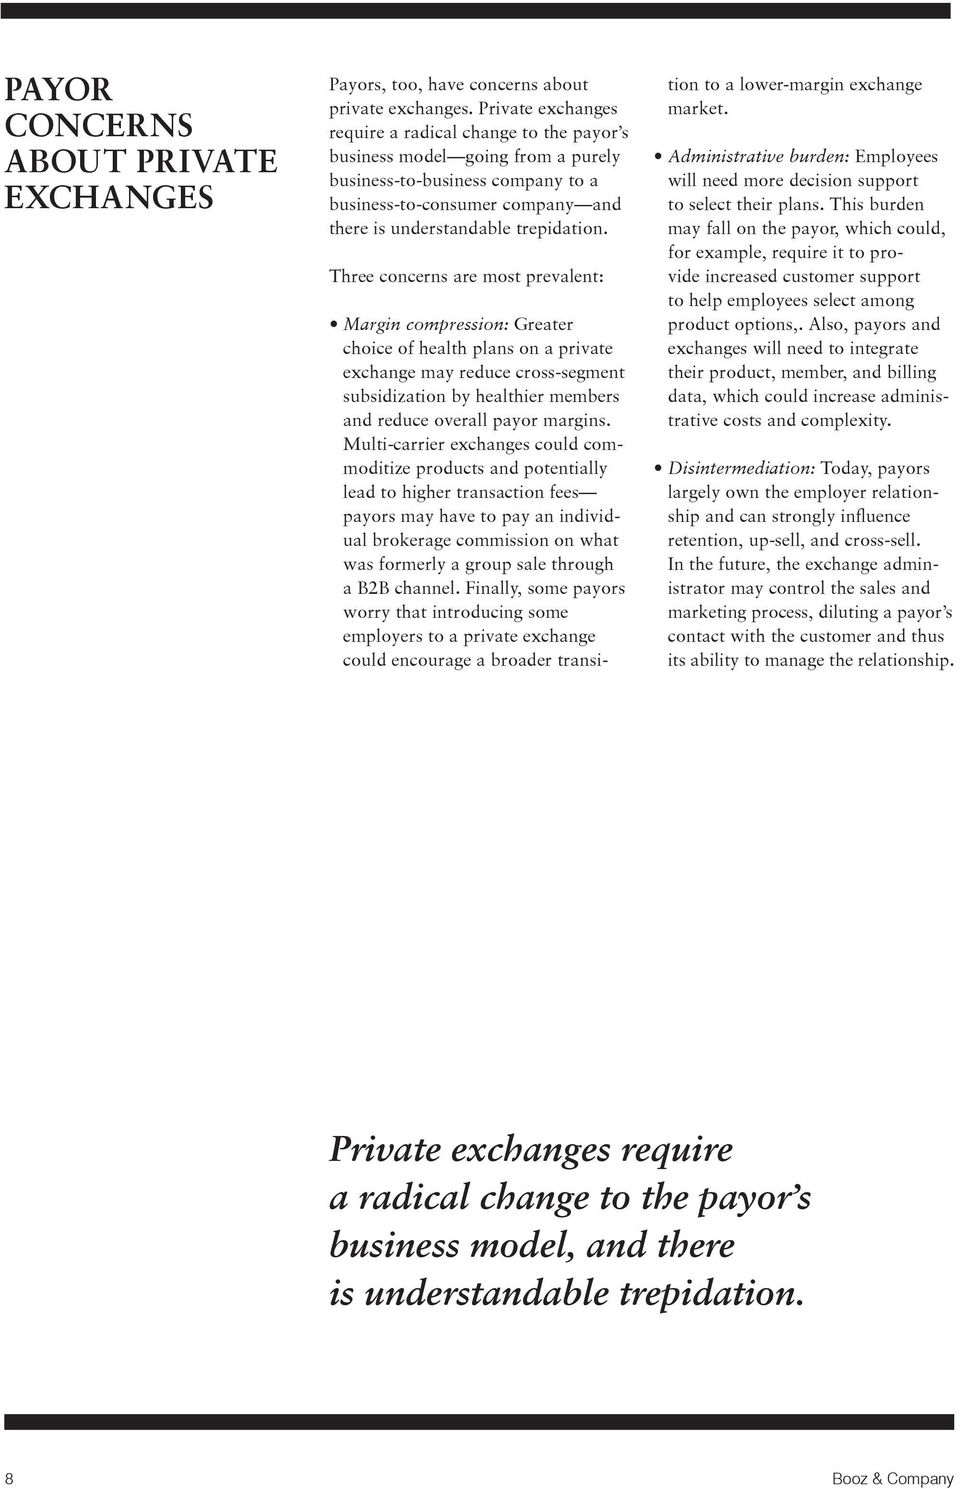 Three concerns are most prevalent: Margin compression: Greater choice of health plans on a private exchange may reduce cross-segment subsidization by healthier members and reduce overall payor